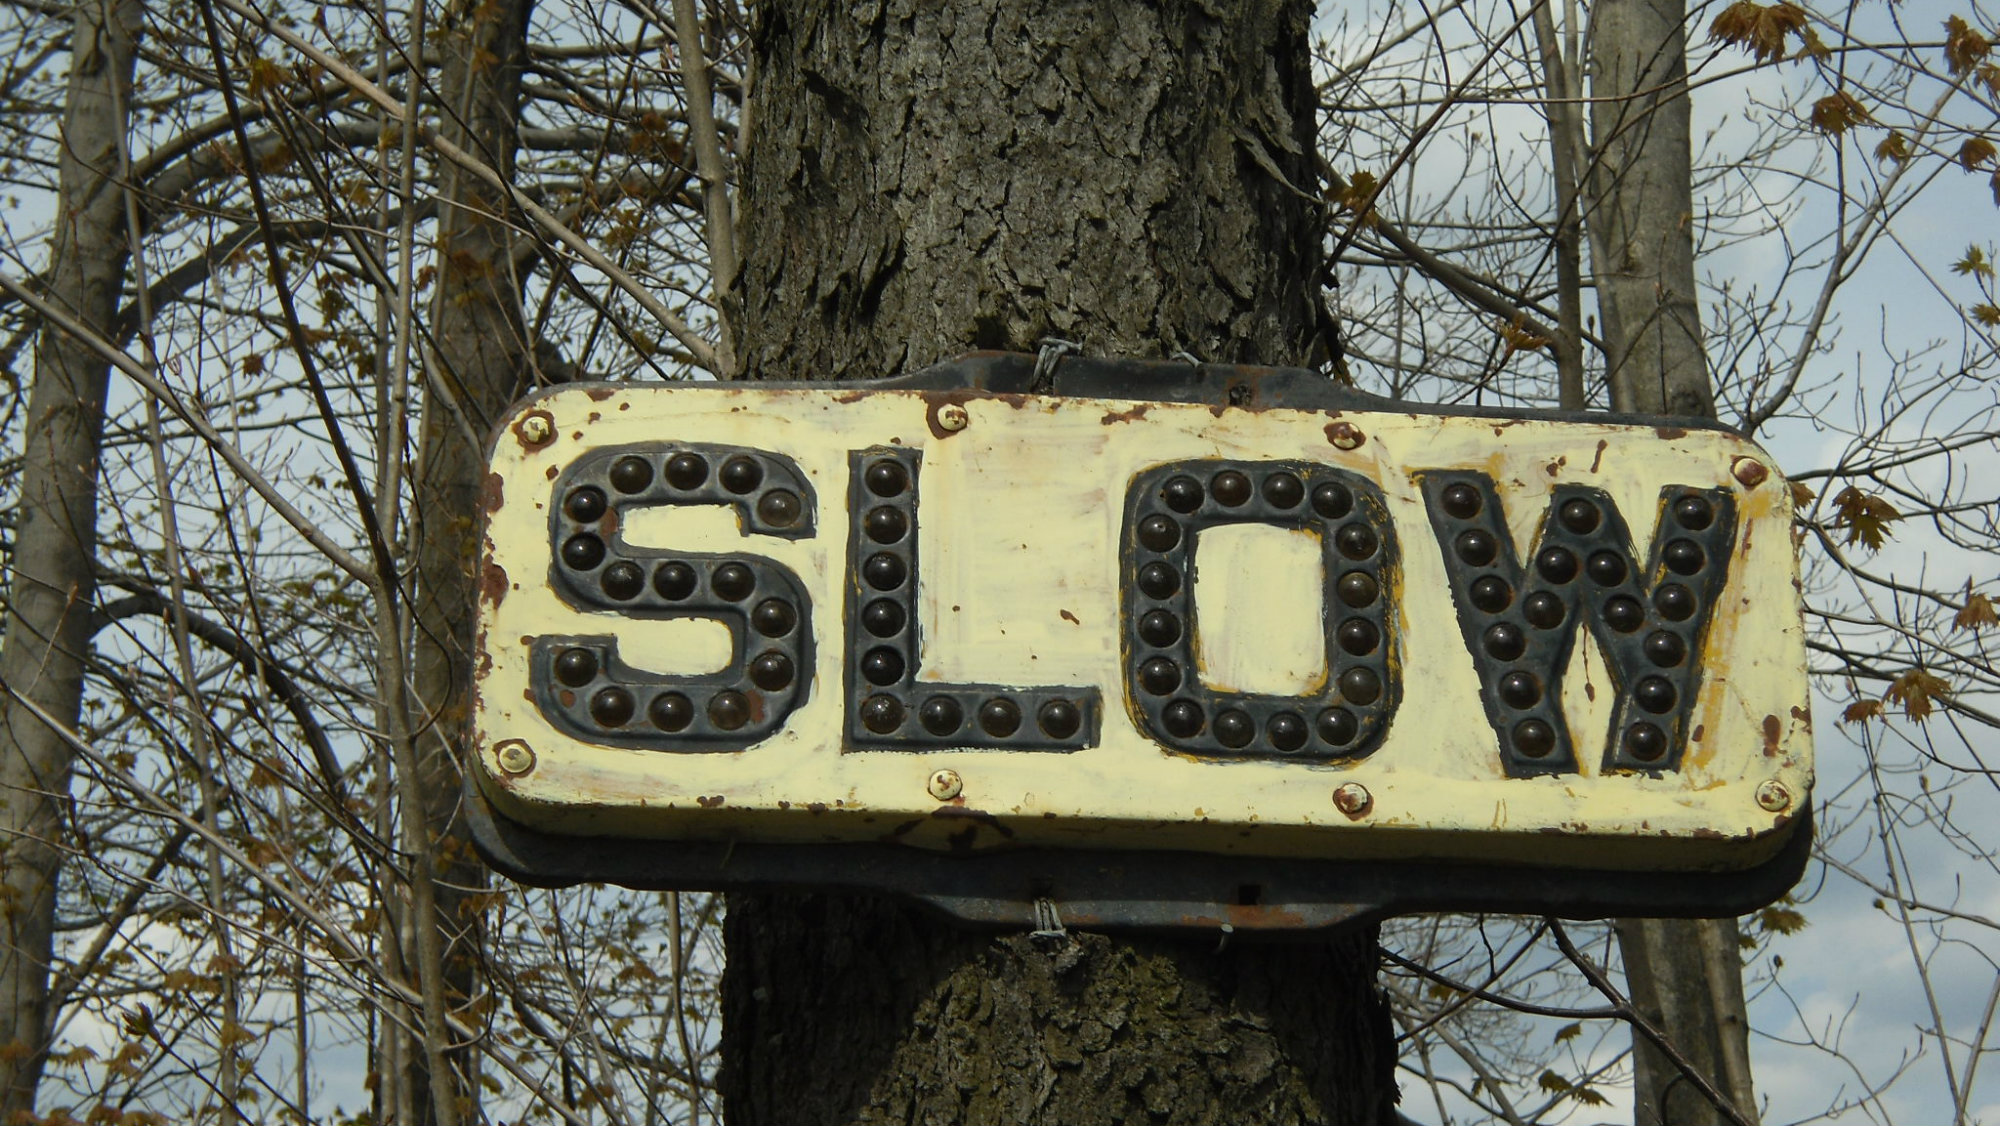 A road sign in upstate East Worcester, New York.